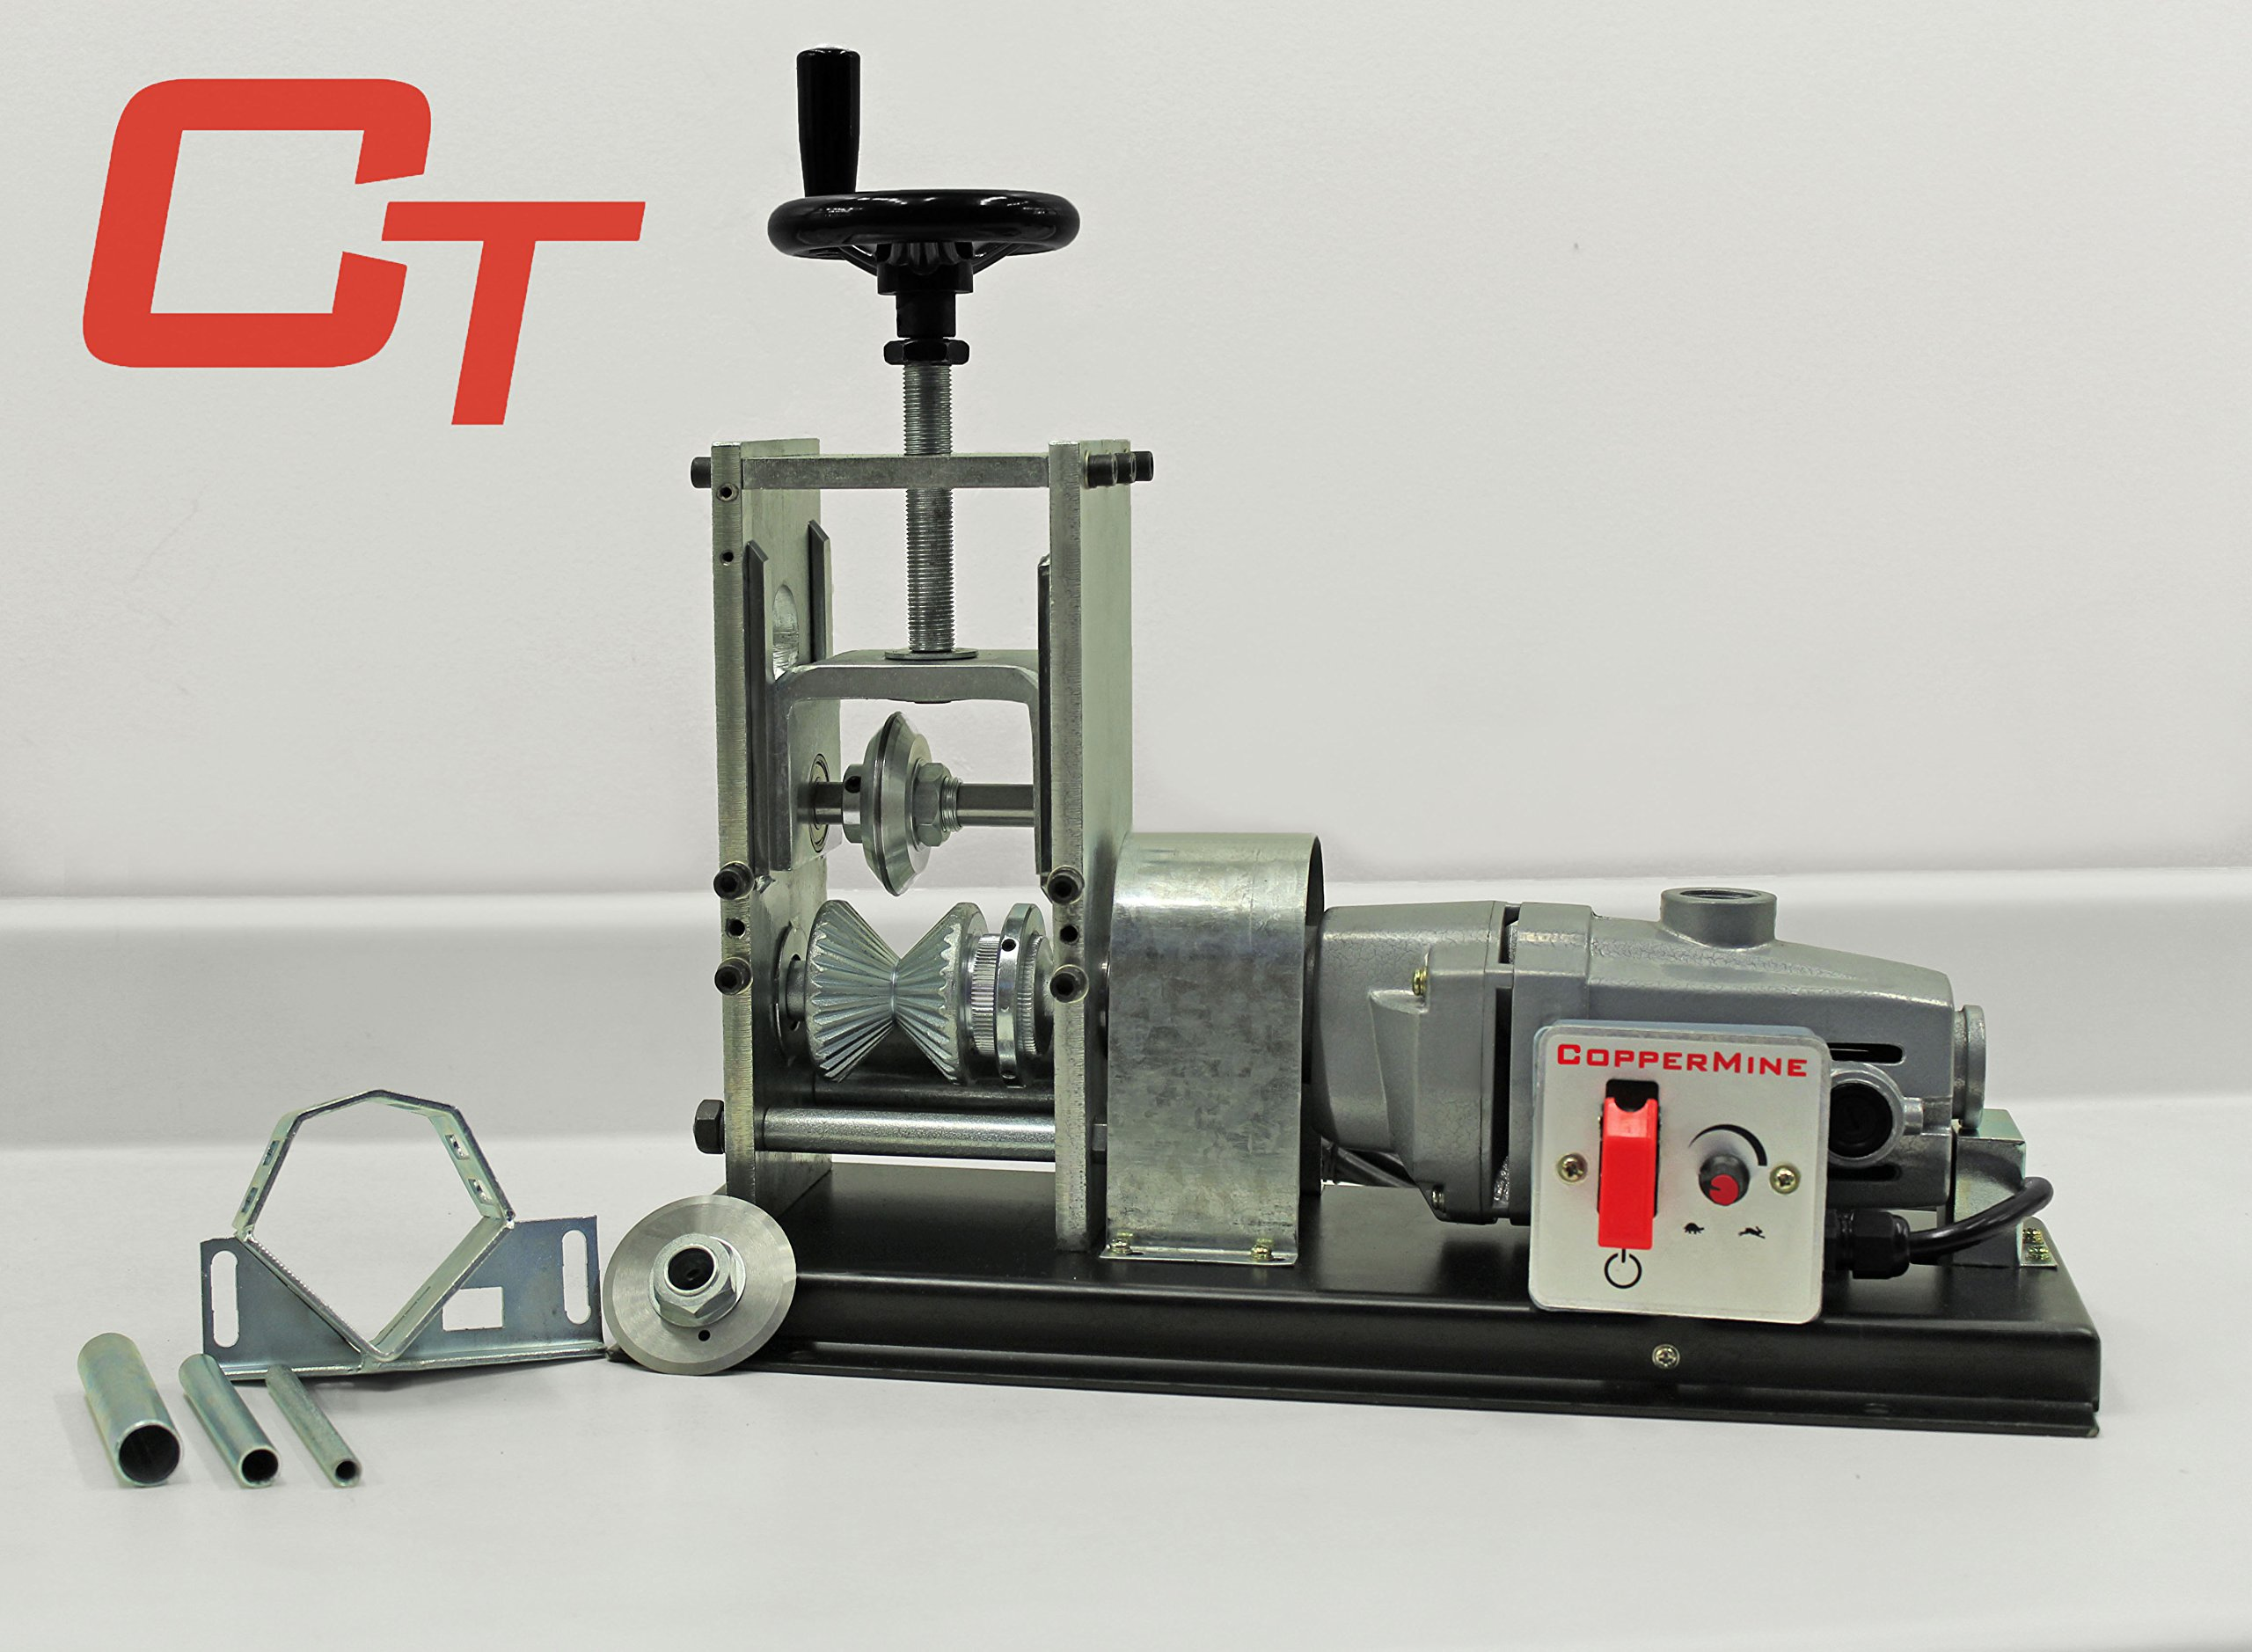 Powered Copper Wire Stripping Machine Newest Tabletop Wire Stripper 18 AWG to 4000 kcm